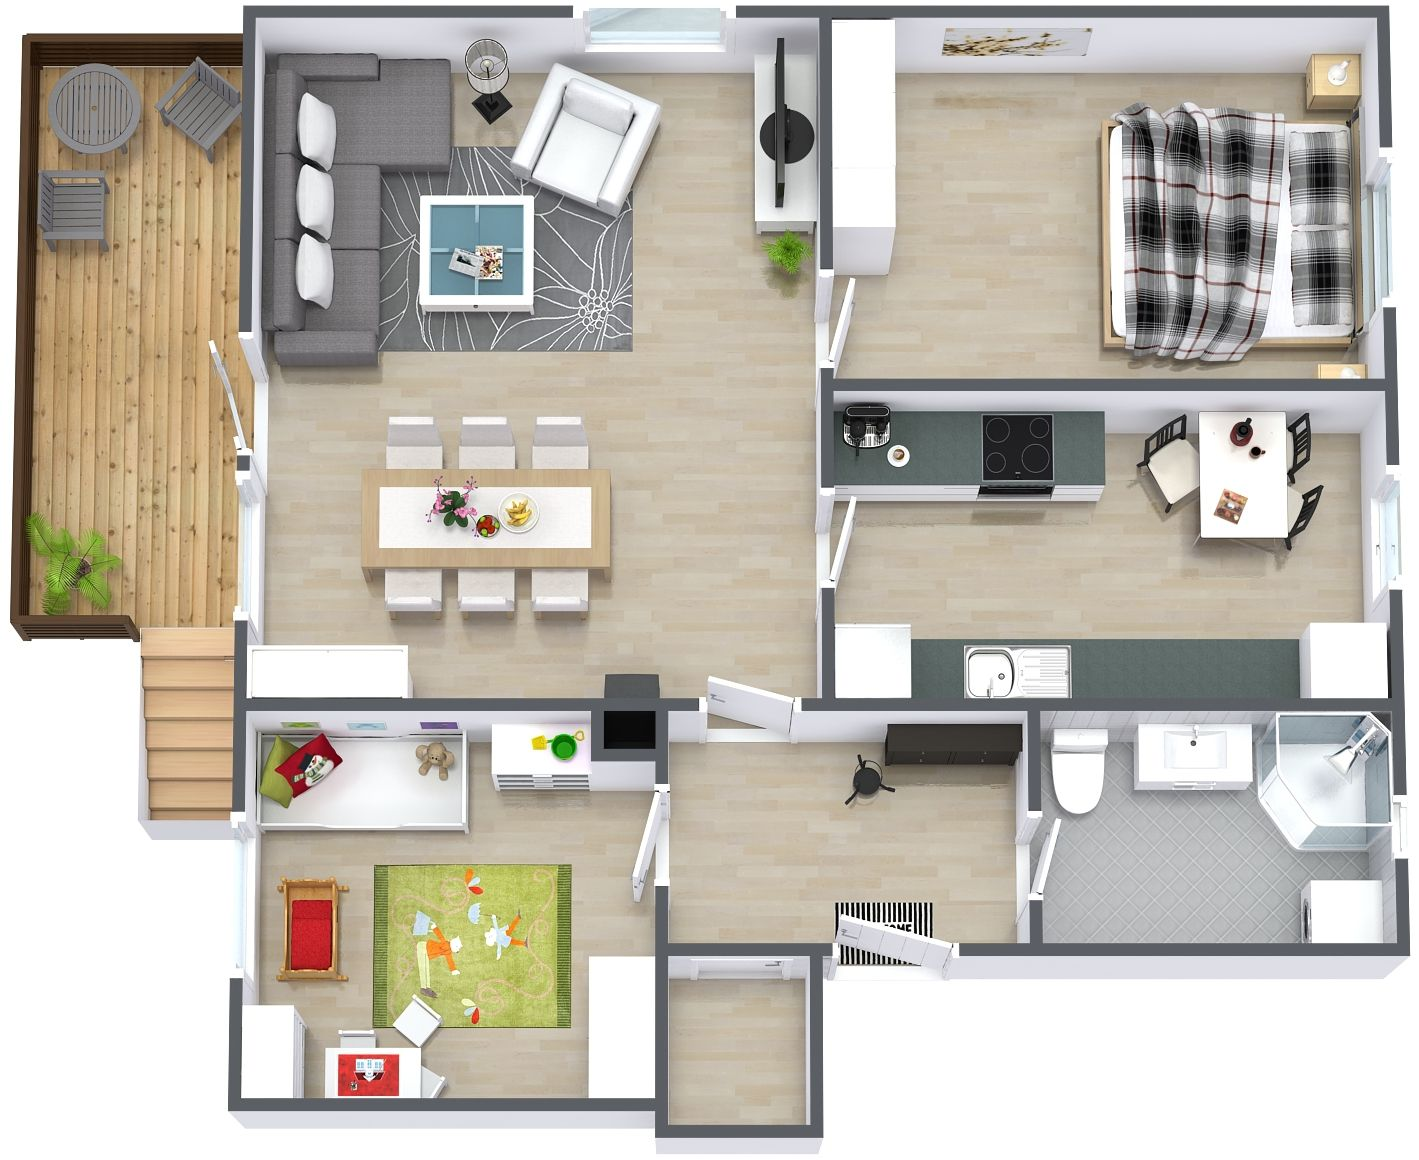 d Small House Design   Floor Plans   Consider Things in     d Small House Design   Floor Plans   Consider Things in Making a Small Home Plans   Projects to Try   Pinterest   Small House Design  Small Houses and